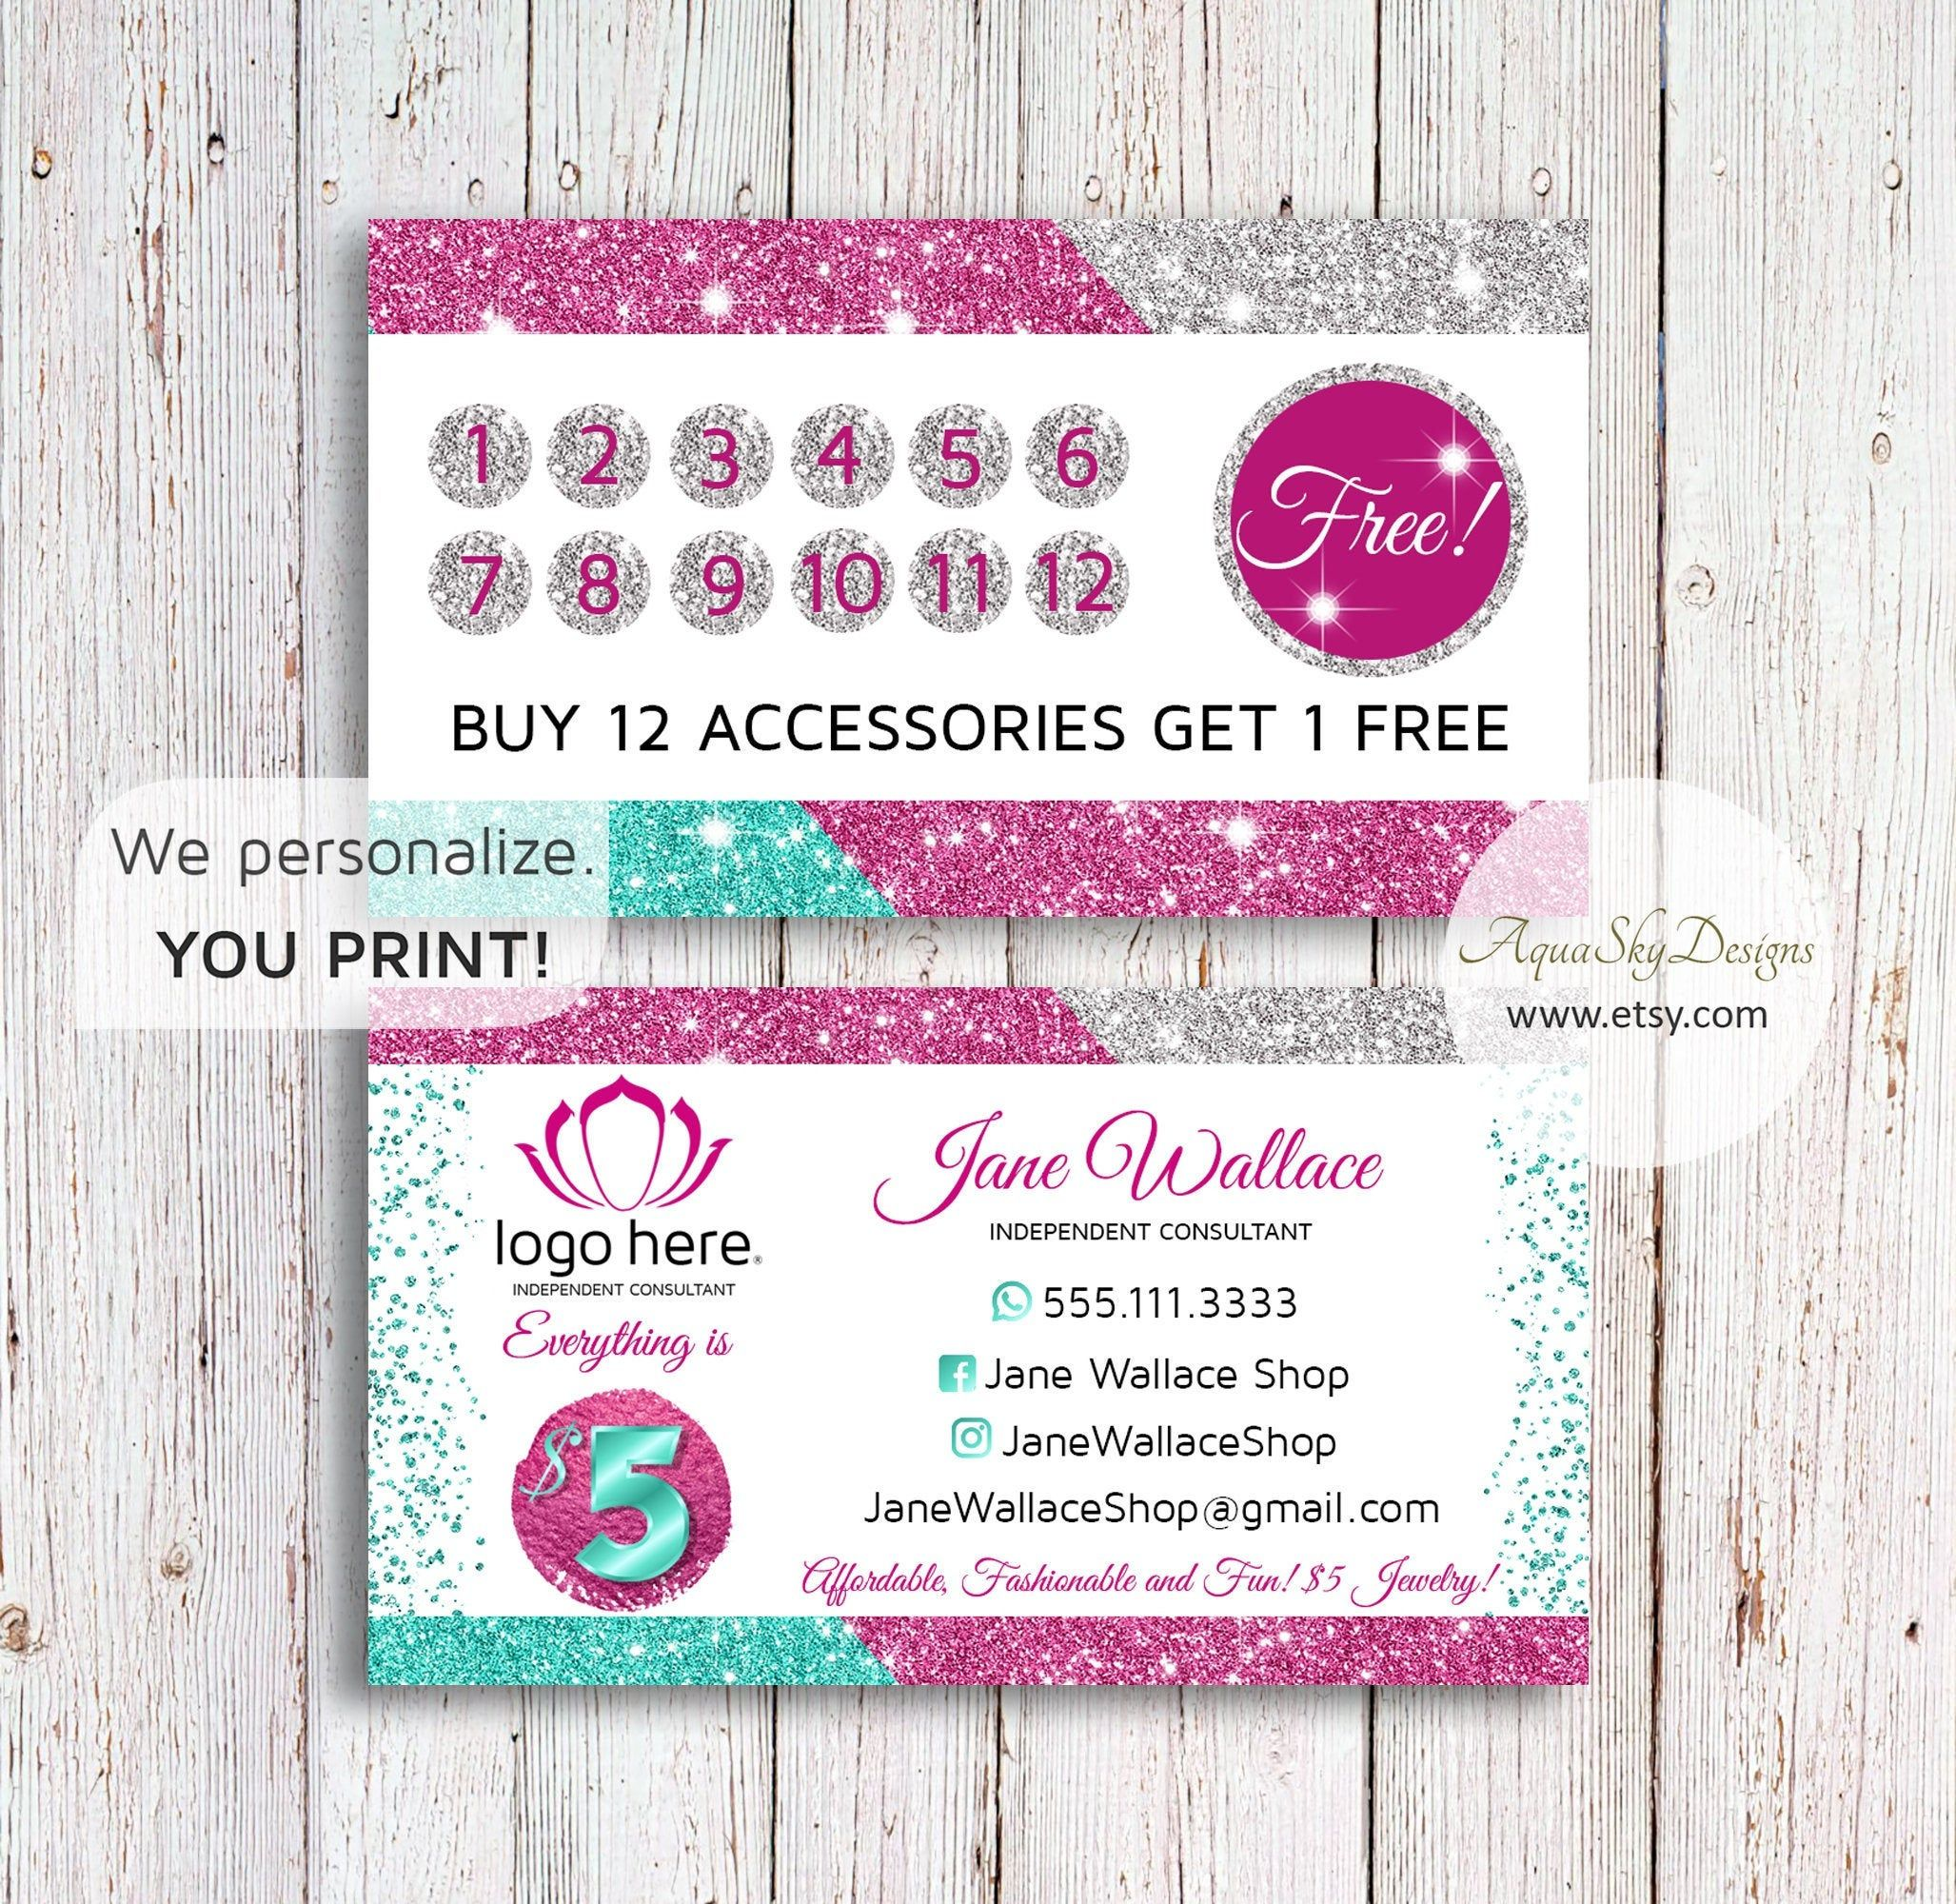 Jewelry Business Cards Punch Card Template Accessories Loyalty Card Punch Cards Digital Pi Jewelry Business Card Card Template Business Card Design Inspiration